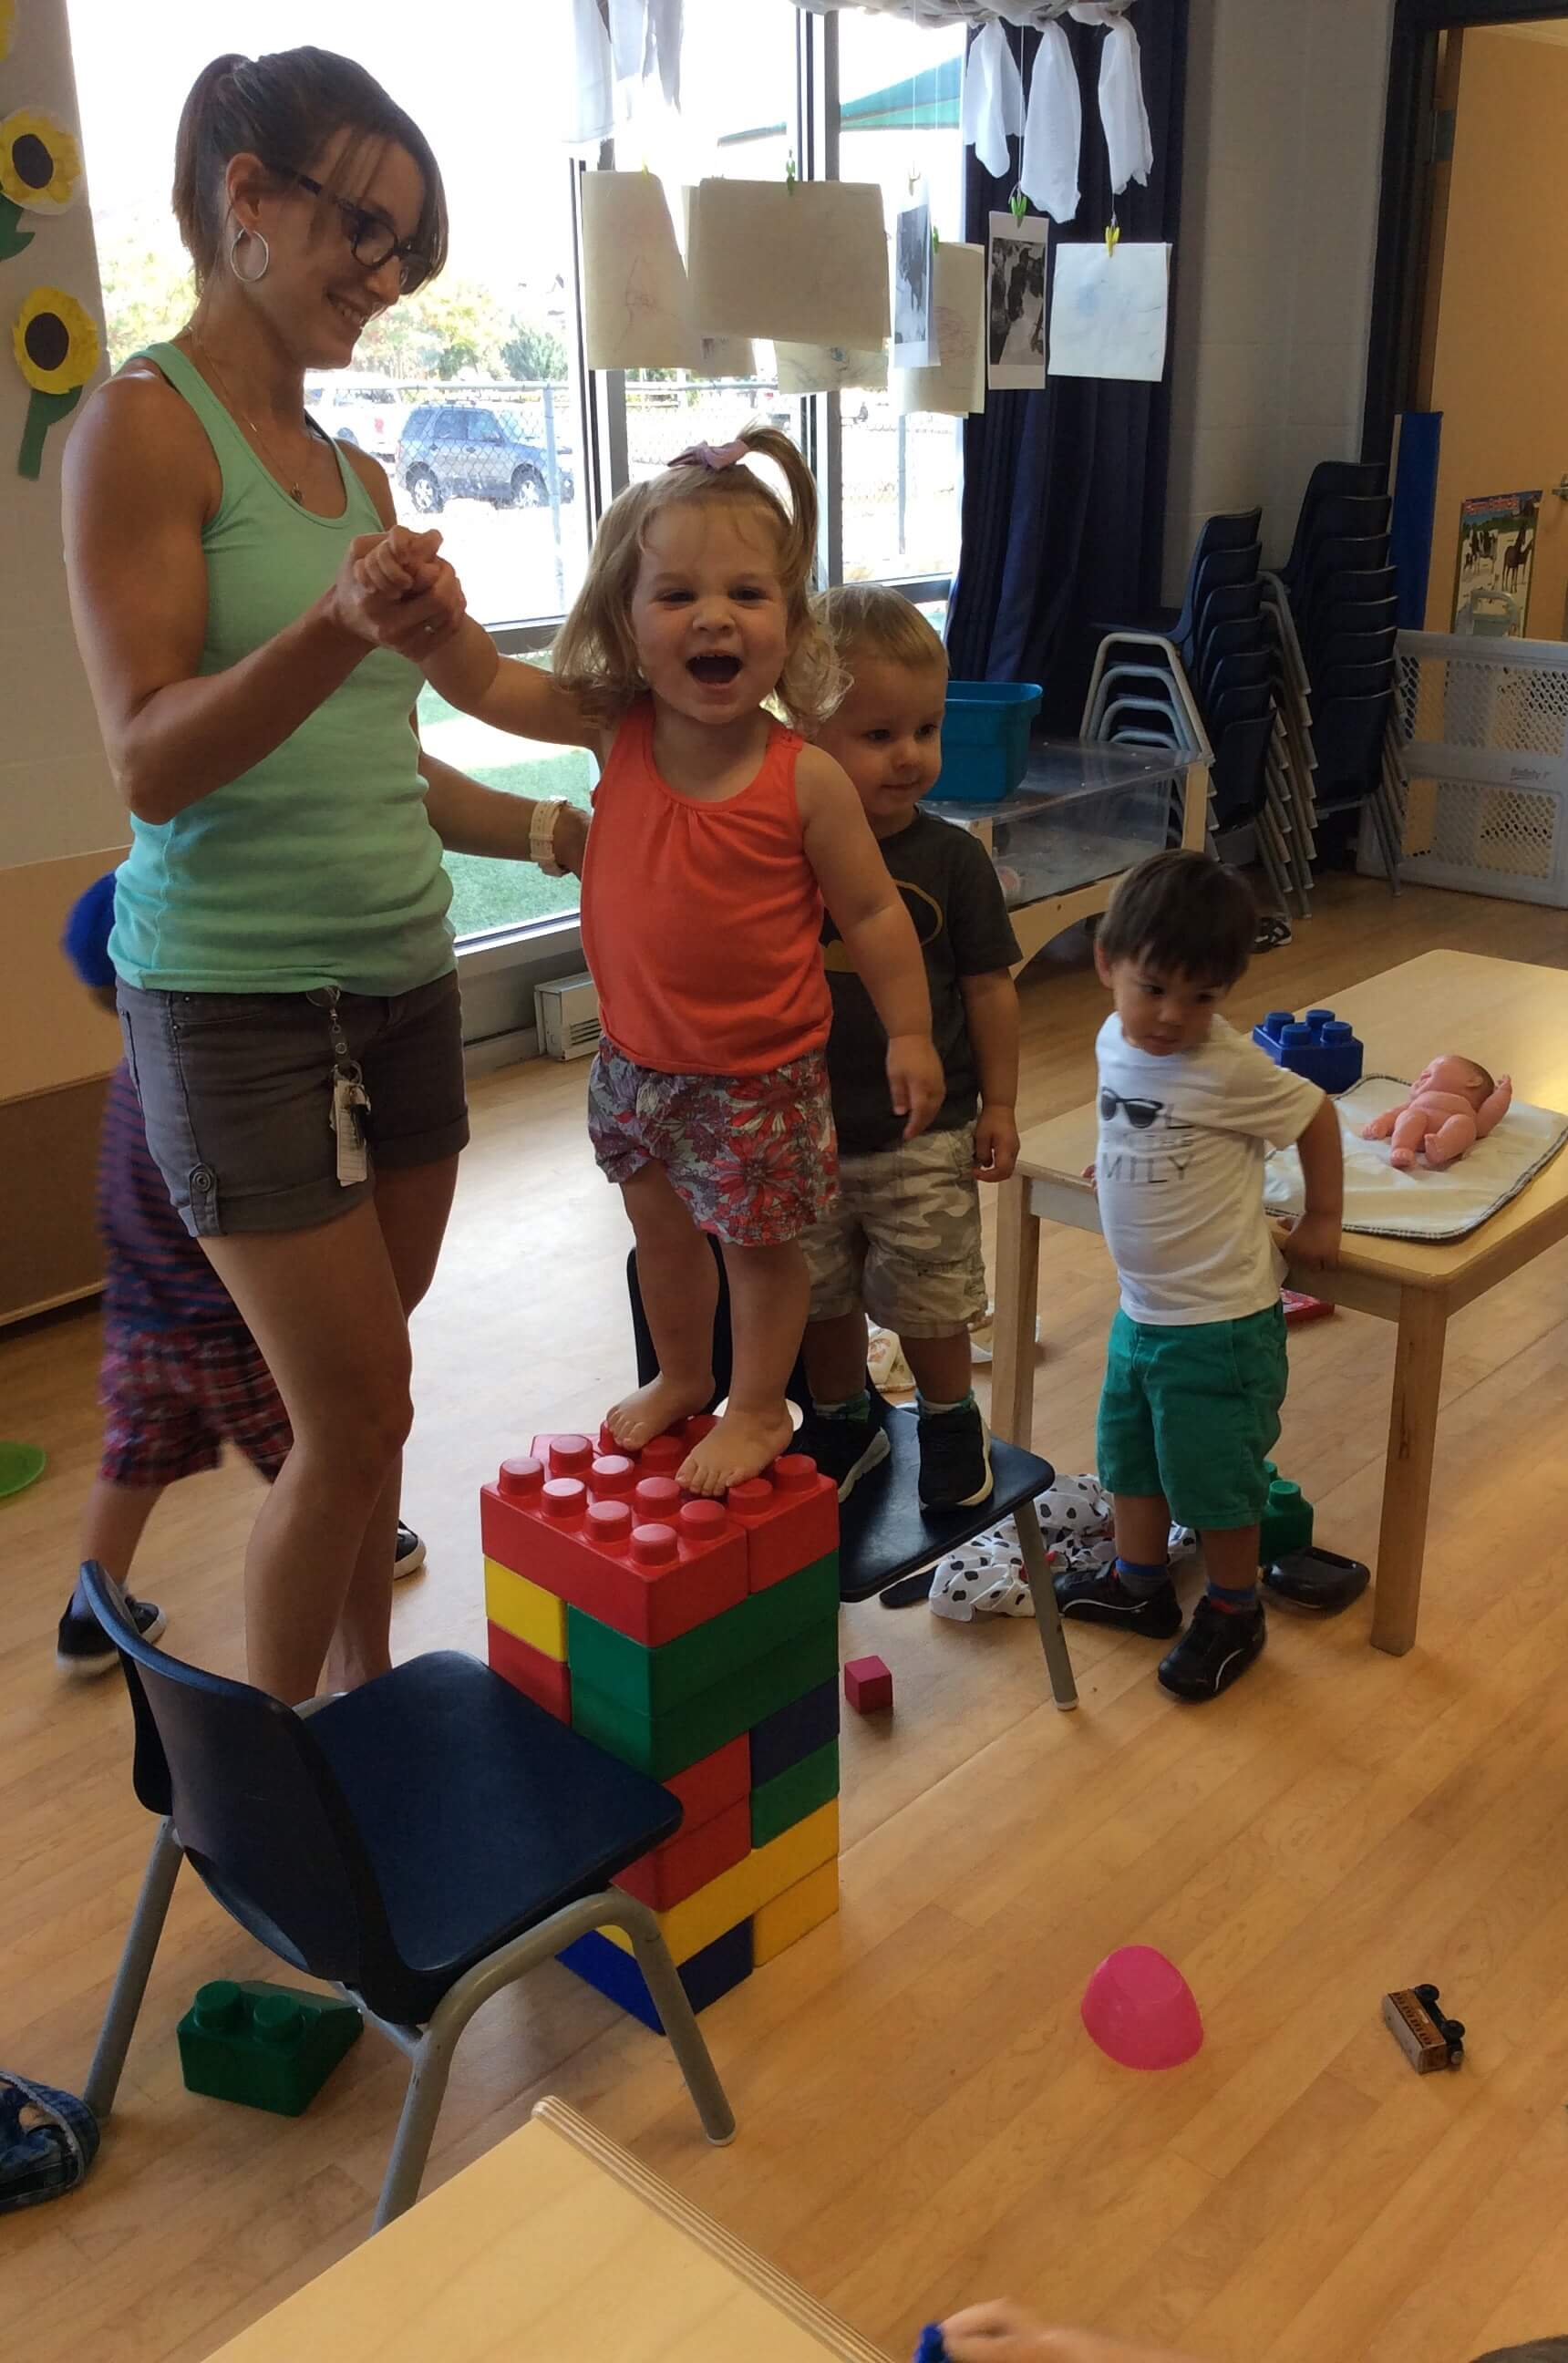 girl balancing on big lego blocks with educator